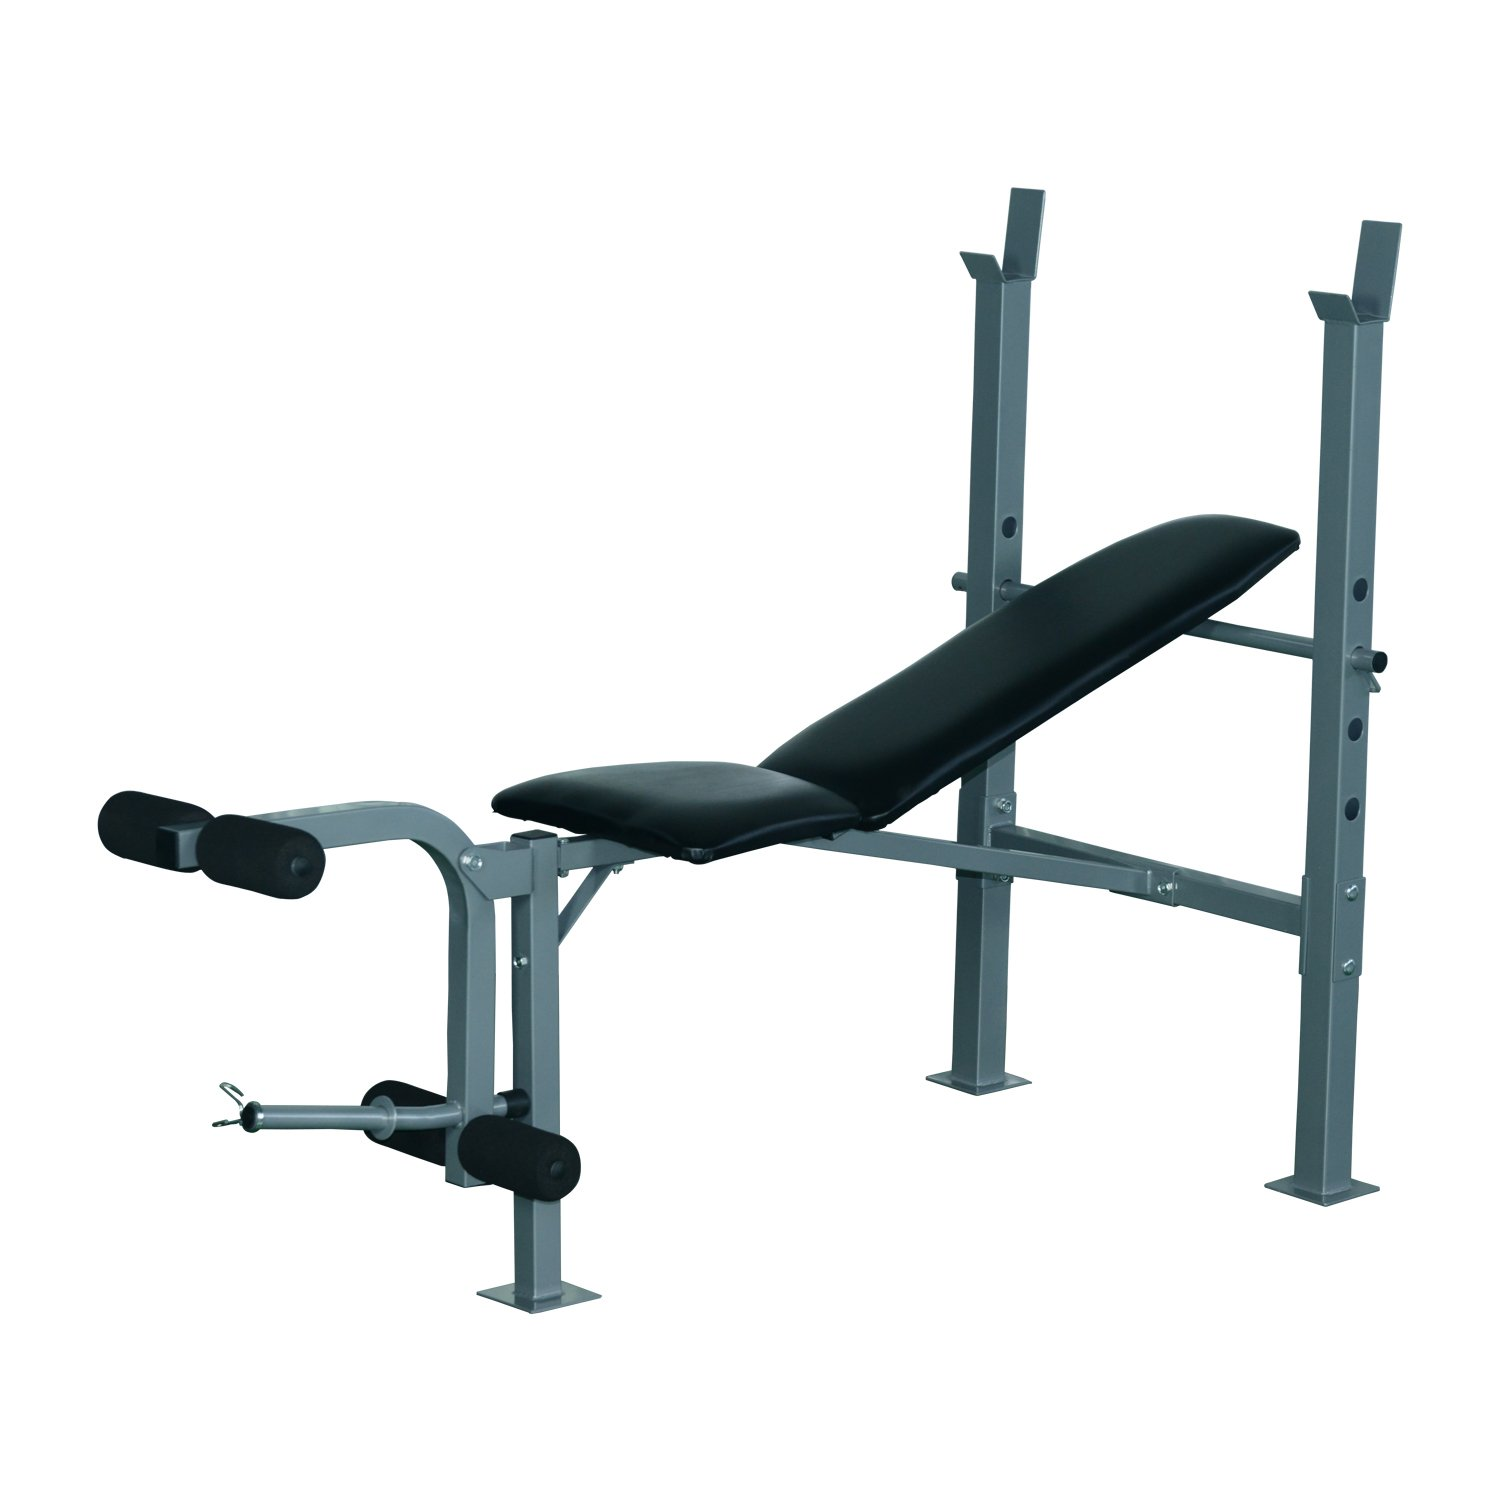 Soozier Incline Decline Adjustable Fitness Exercise Olympic Weight Lifting Bench with Leg Extension Aosom Canada